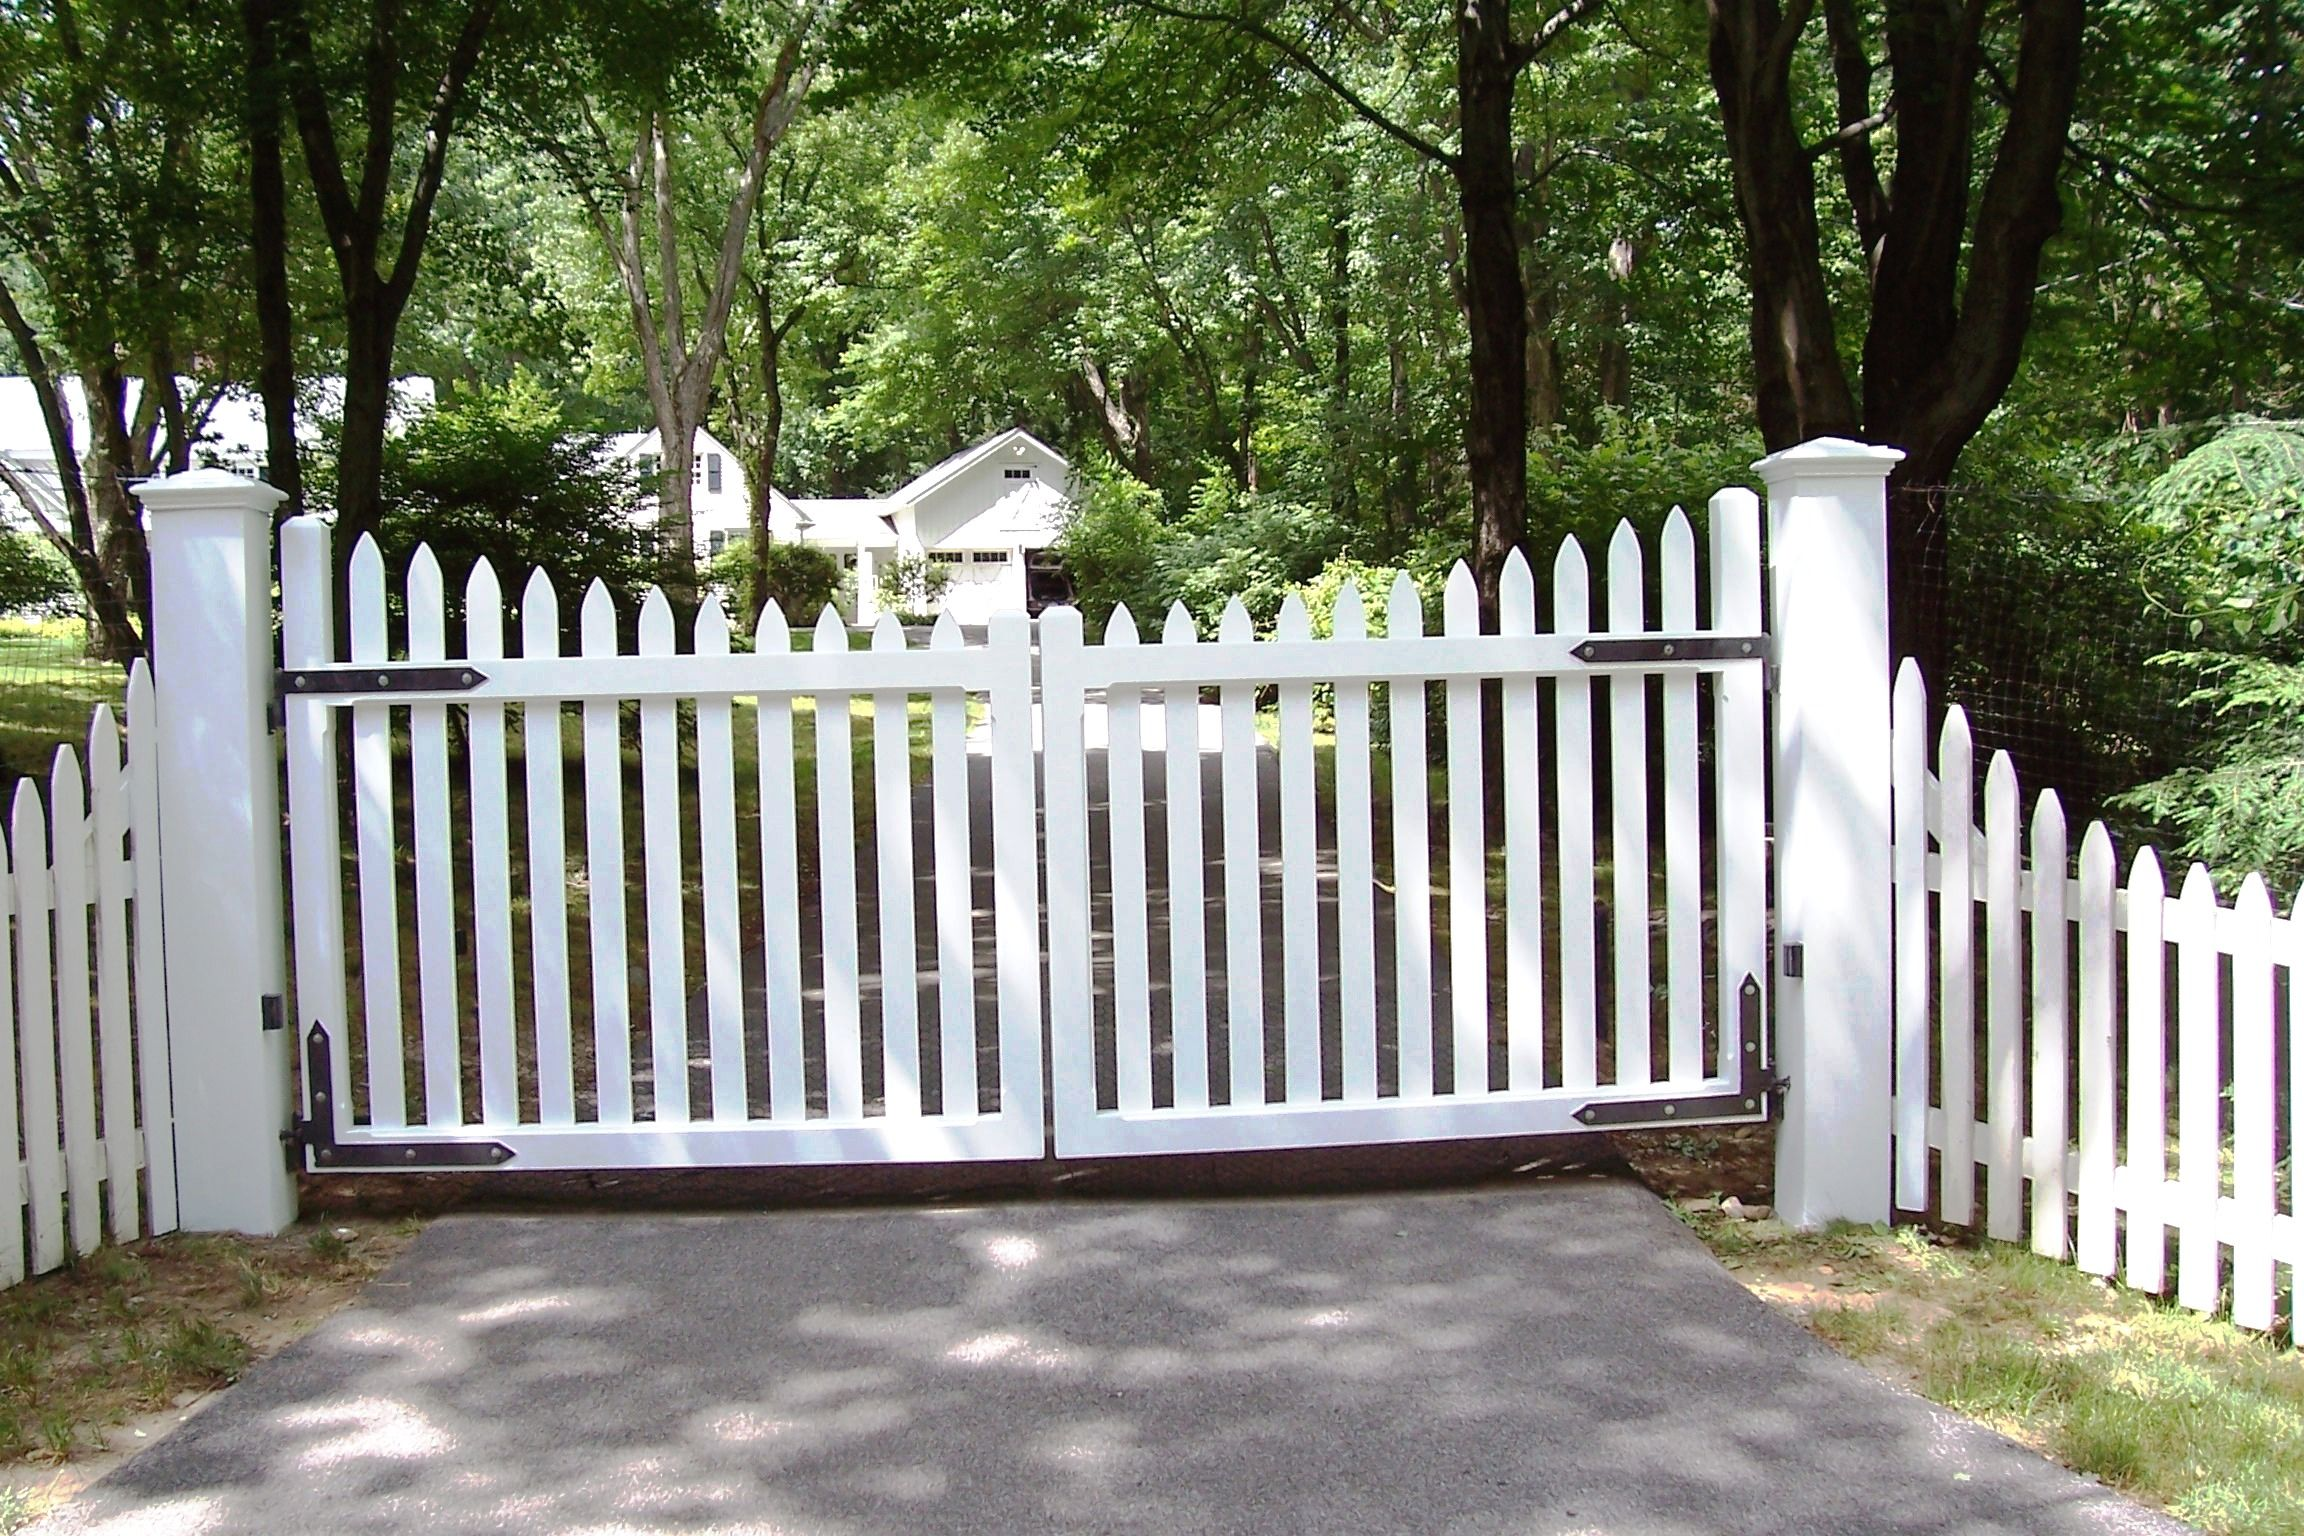 Automated White Wood Picket Gate Wood Gates Driveway Picket Fence Gate Fence Gate Design